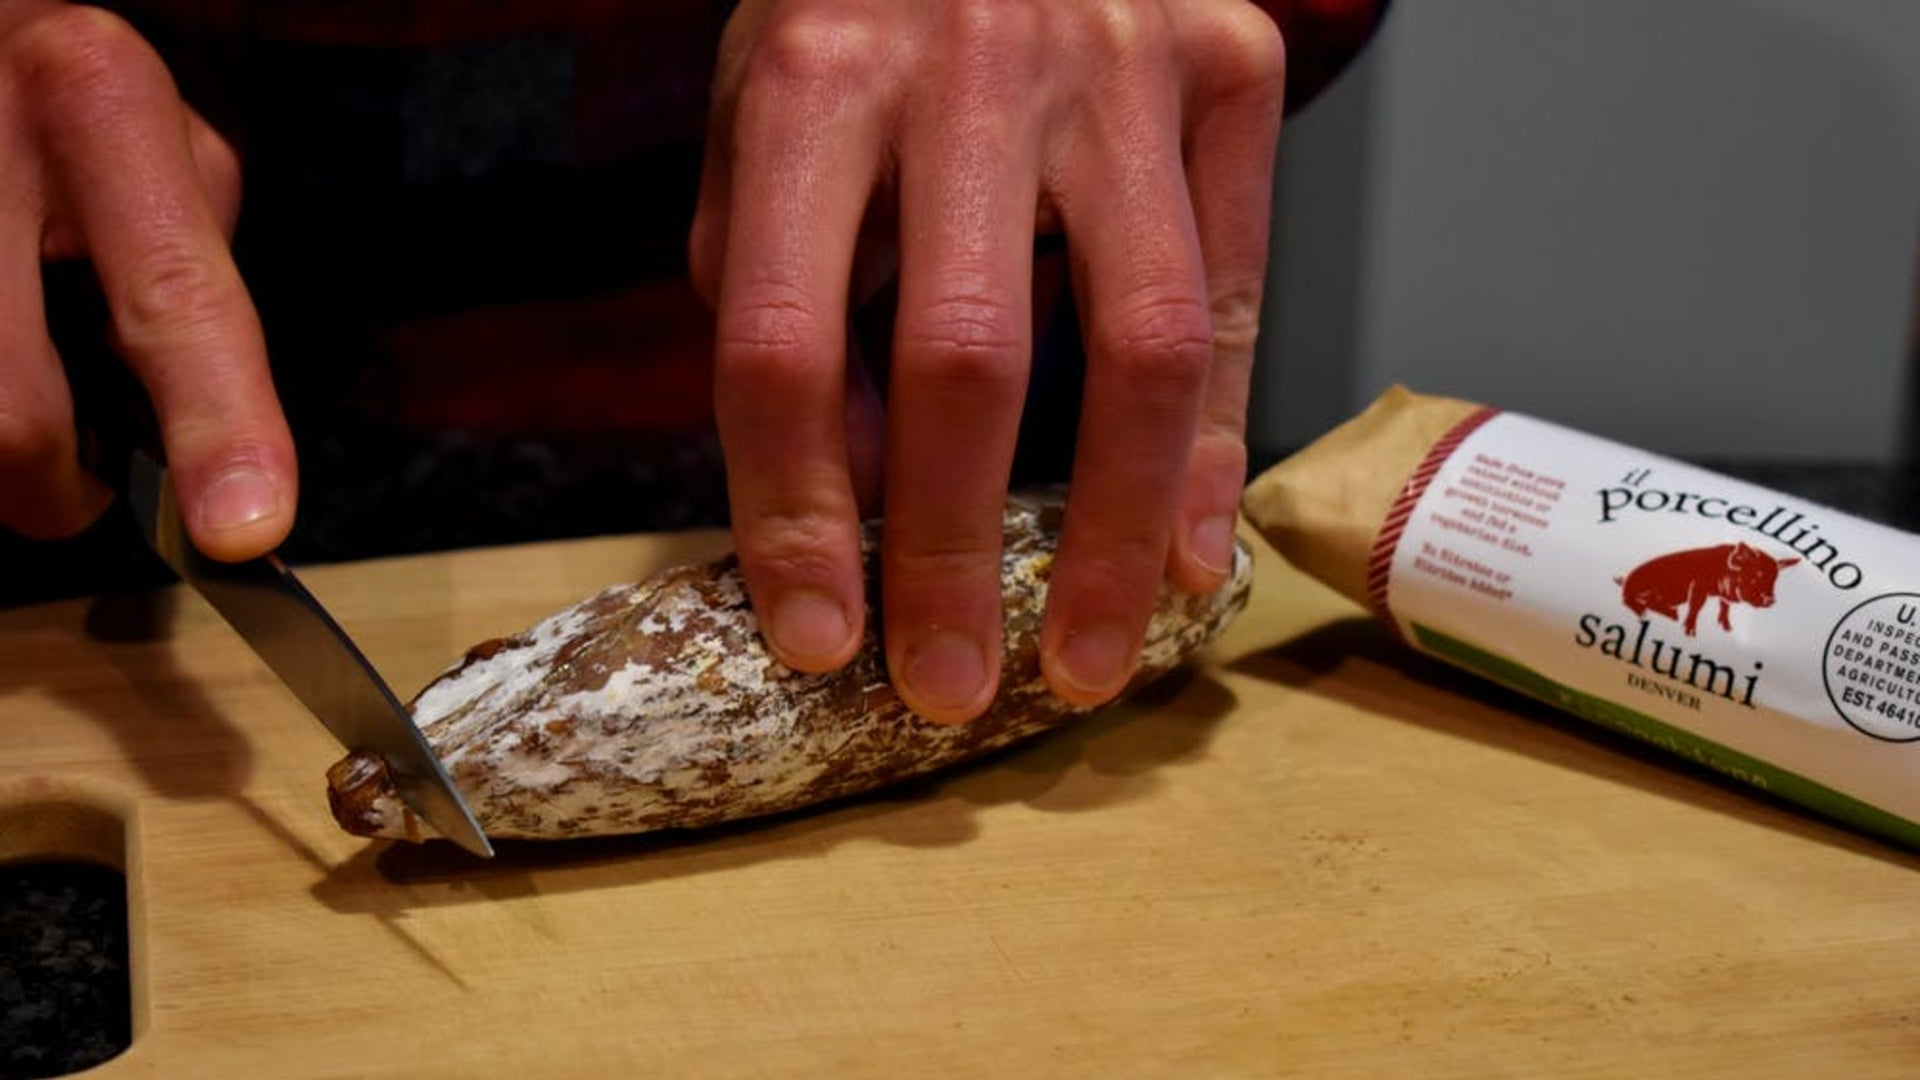 A picture of someone cutting a salami on a cutting board to show that it's okay to touch the protective salami mold.